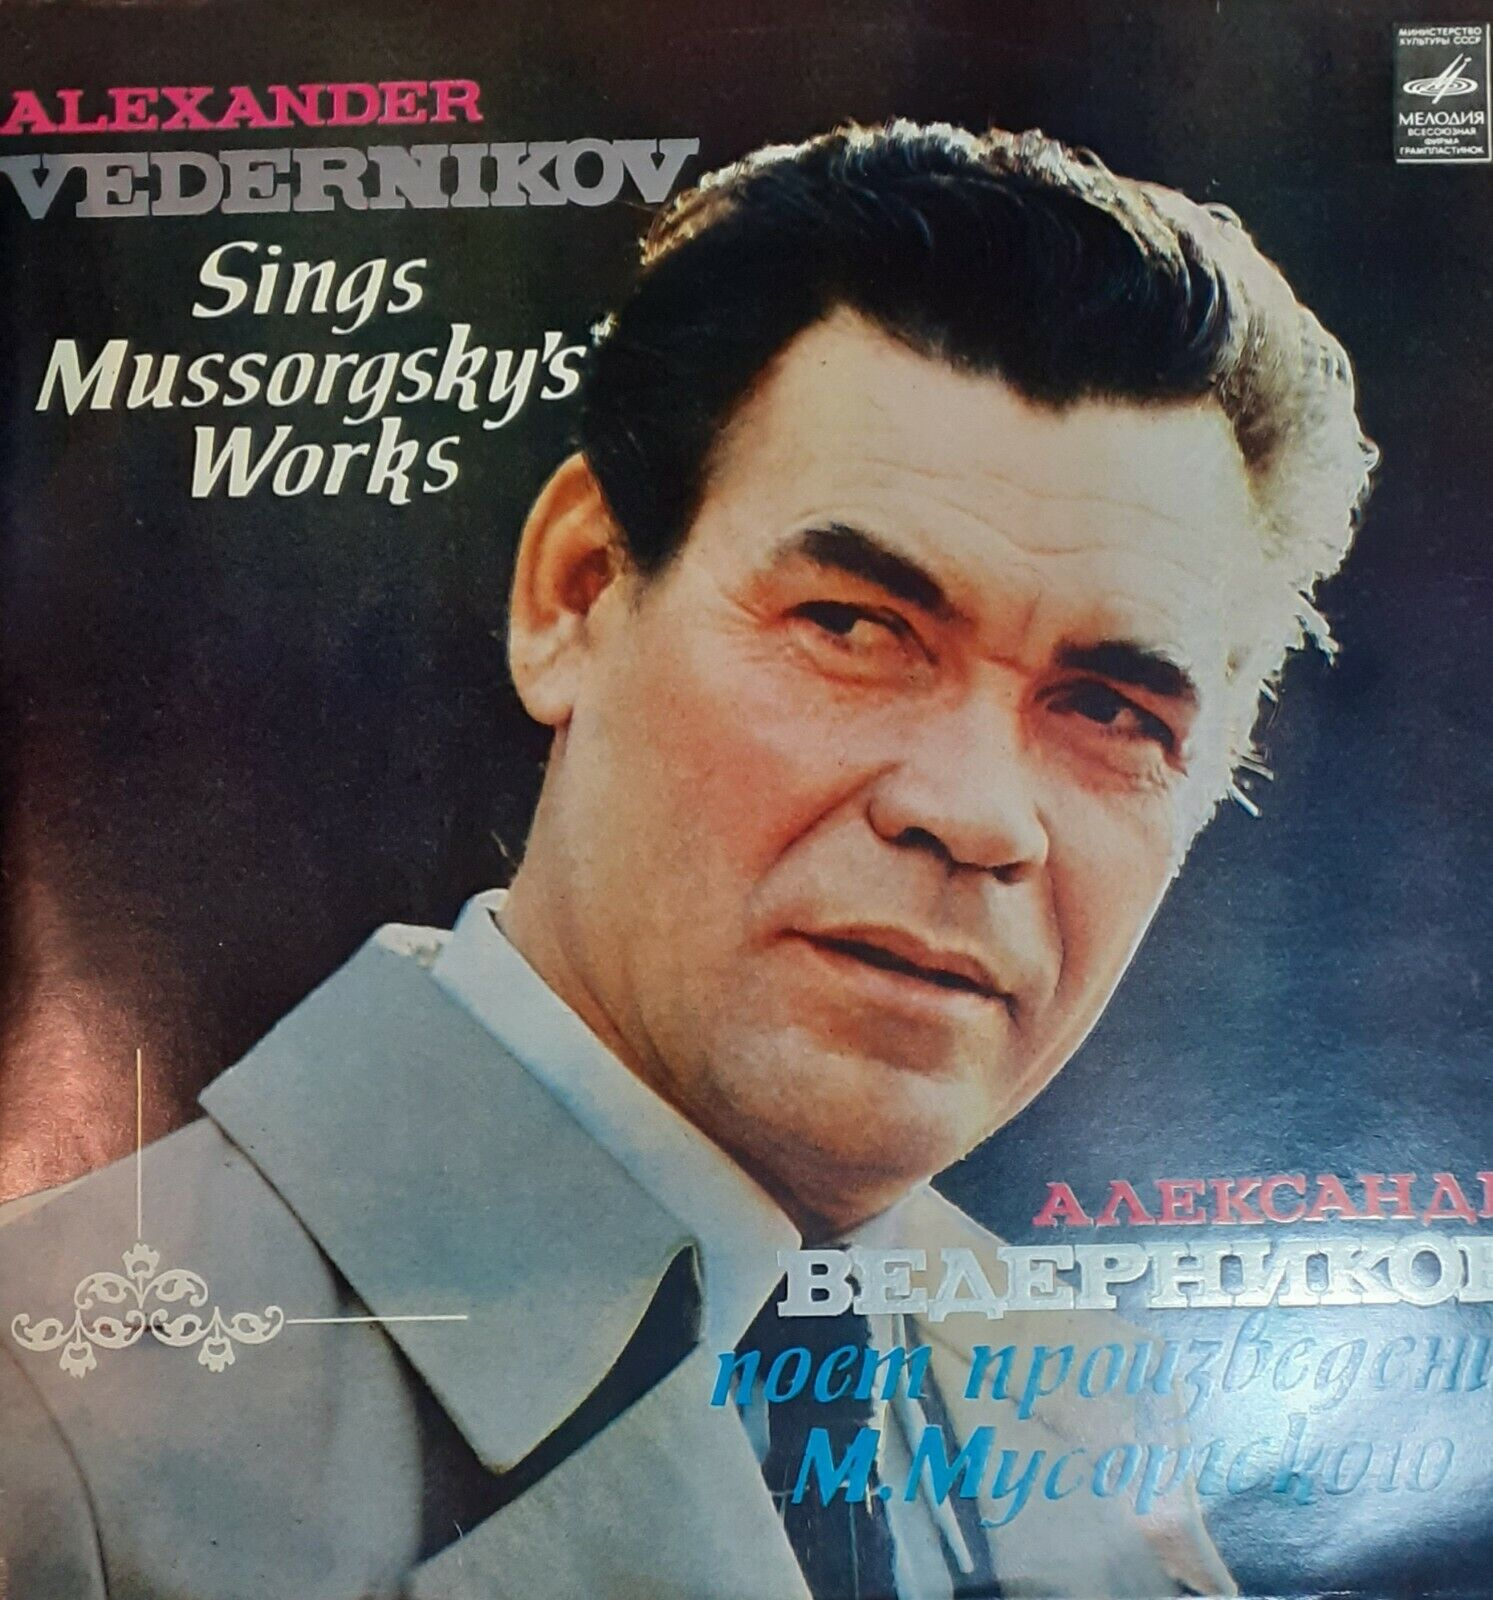 alexander vedernikov im radio-today - Shop